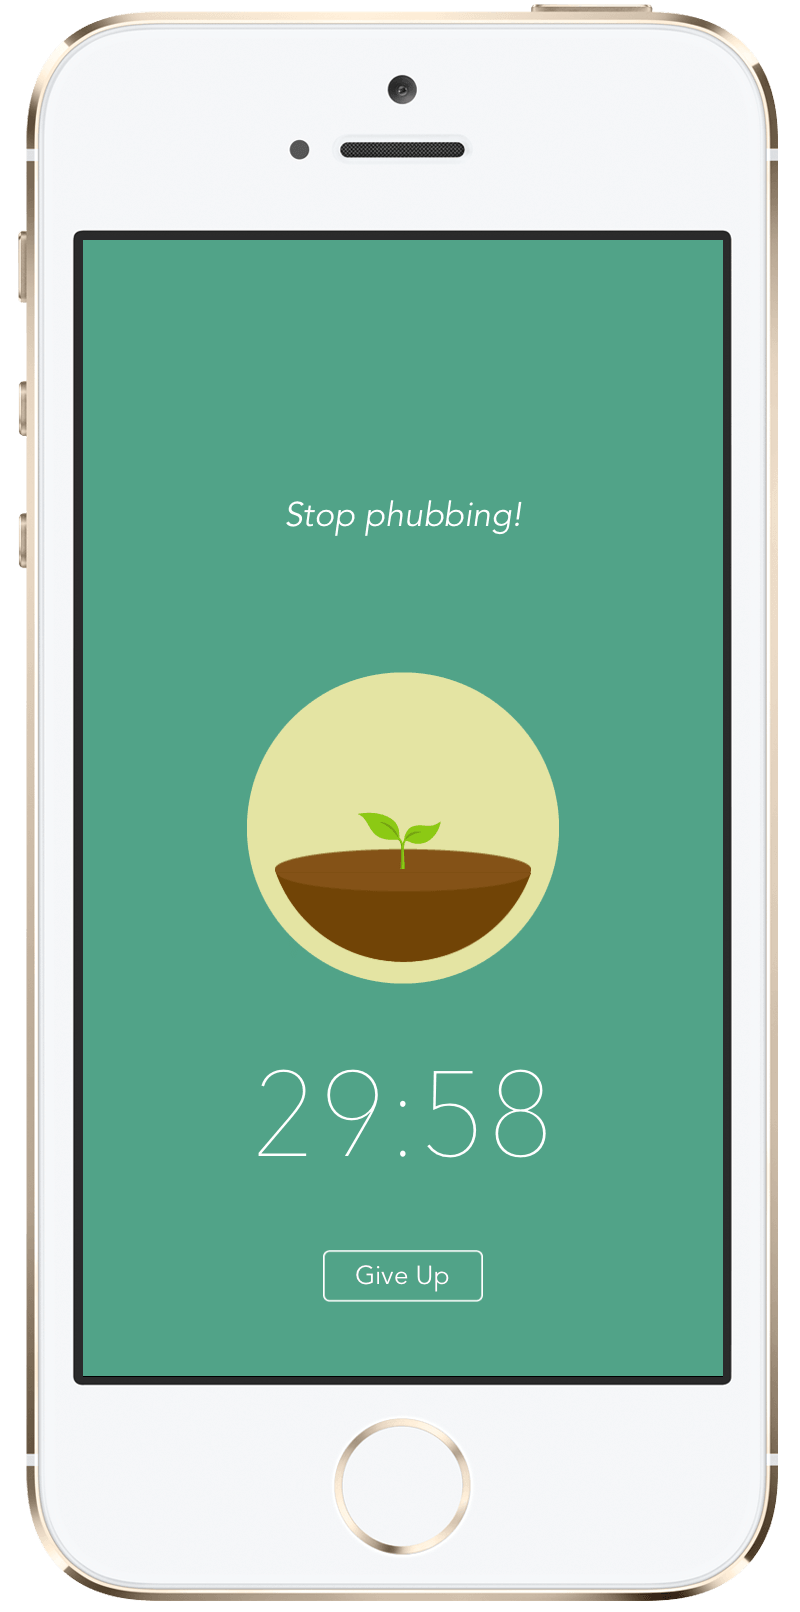 - Forest App